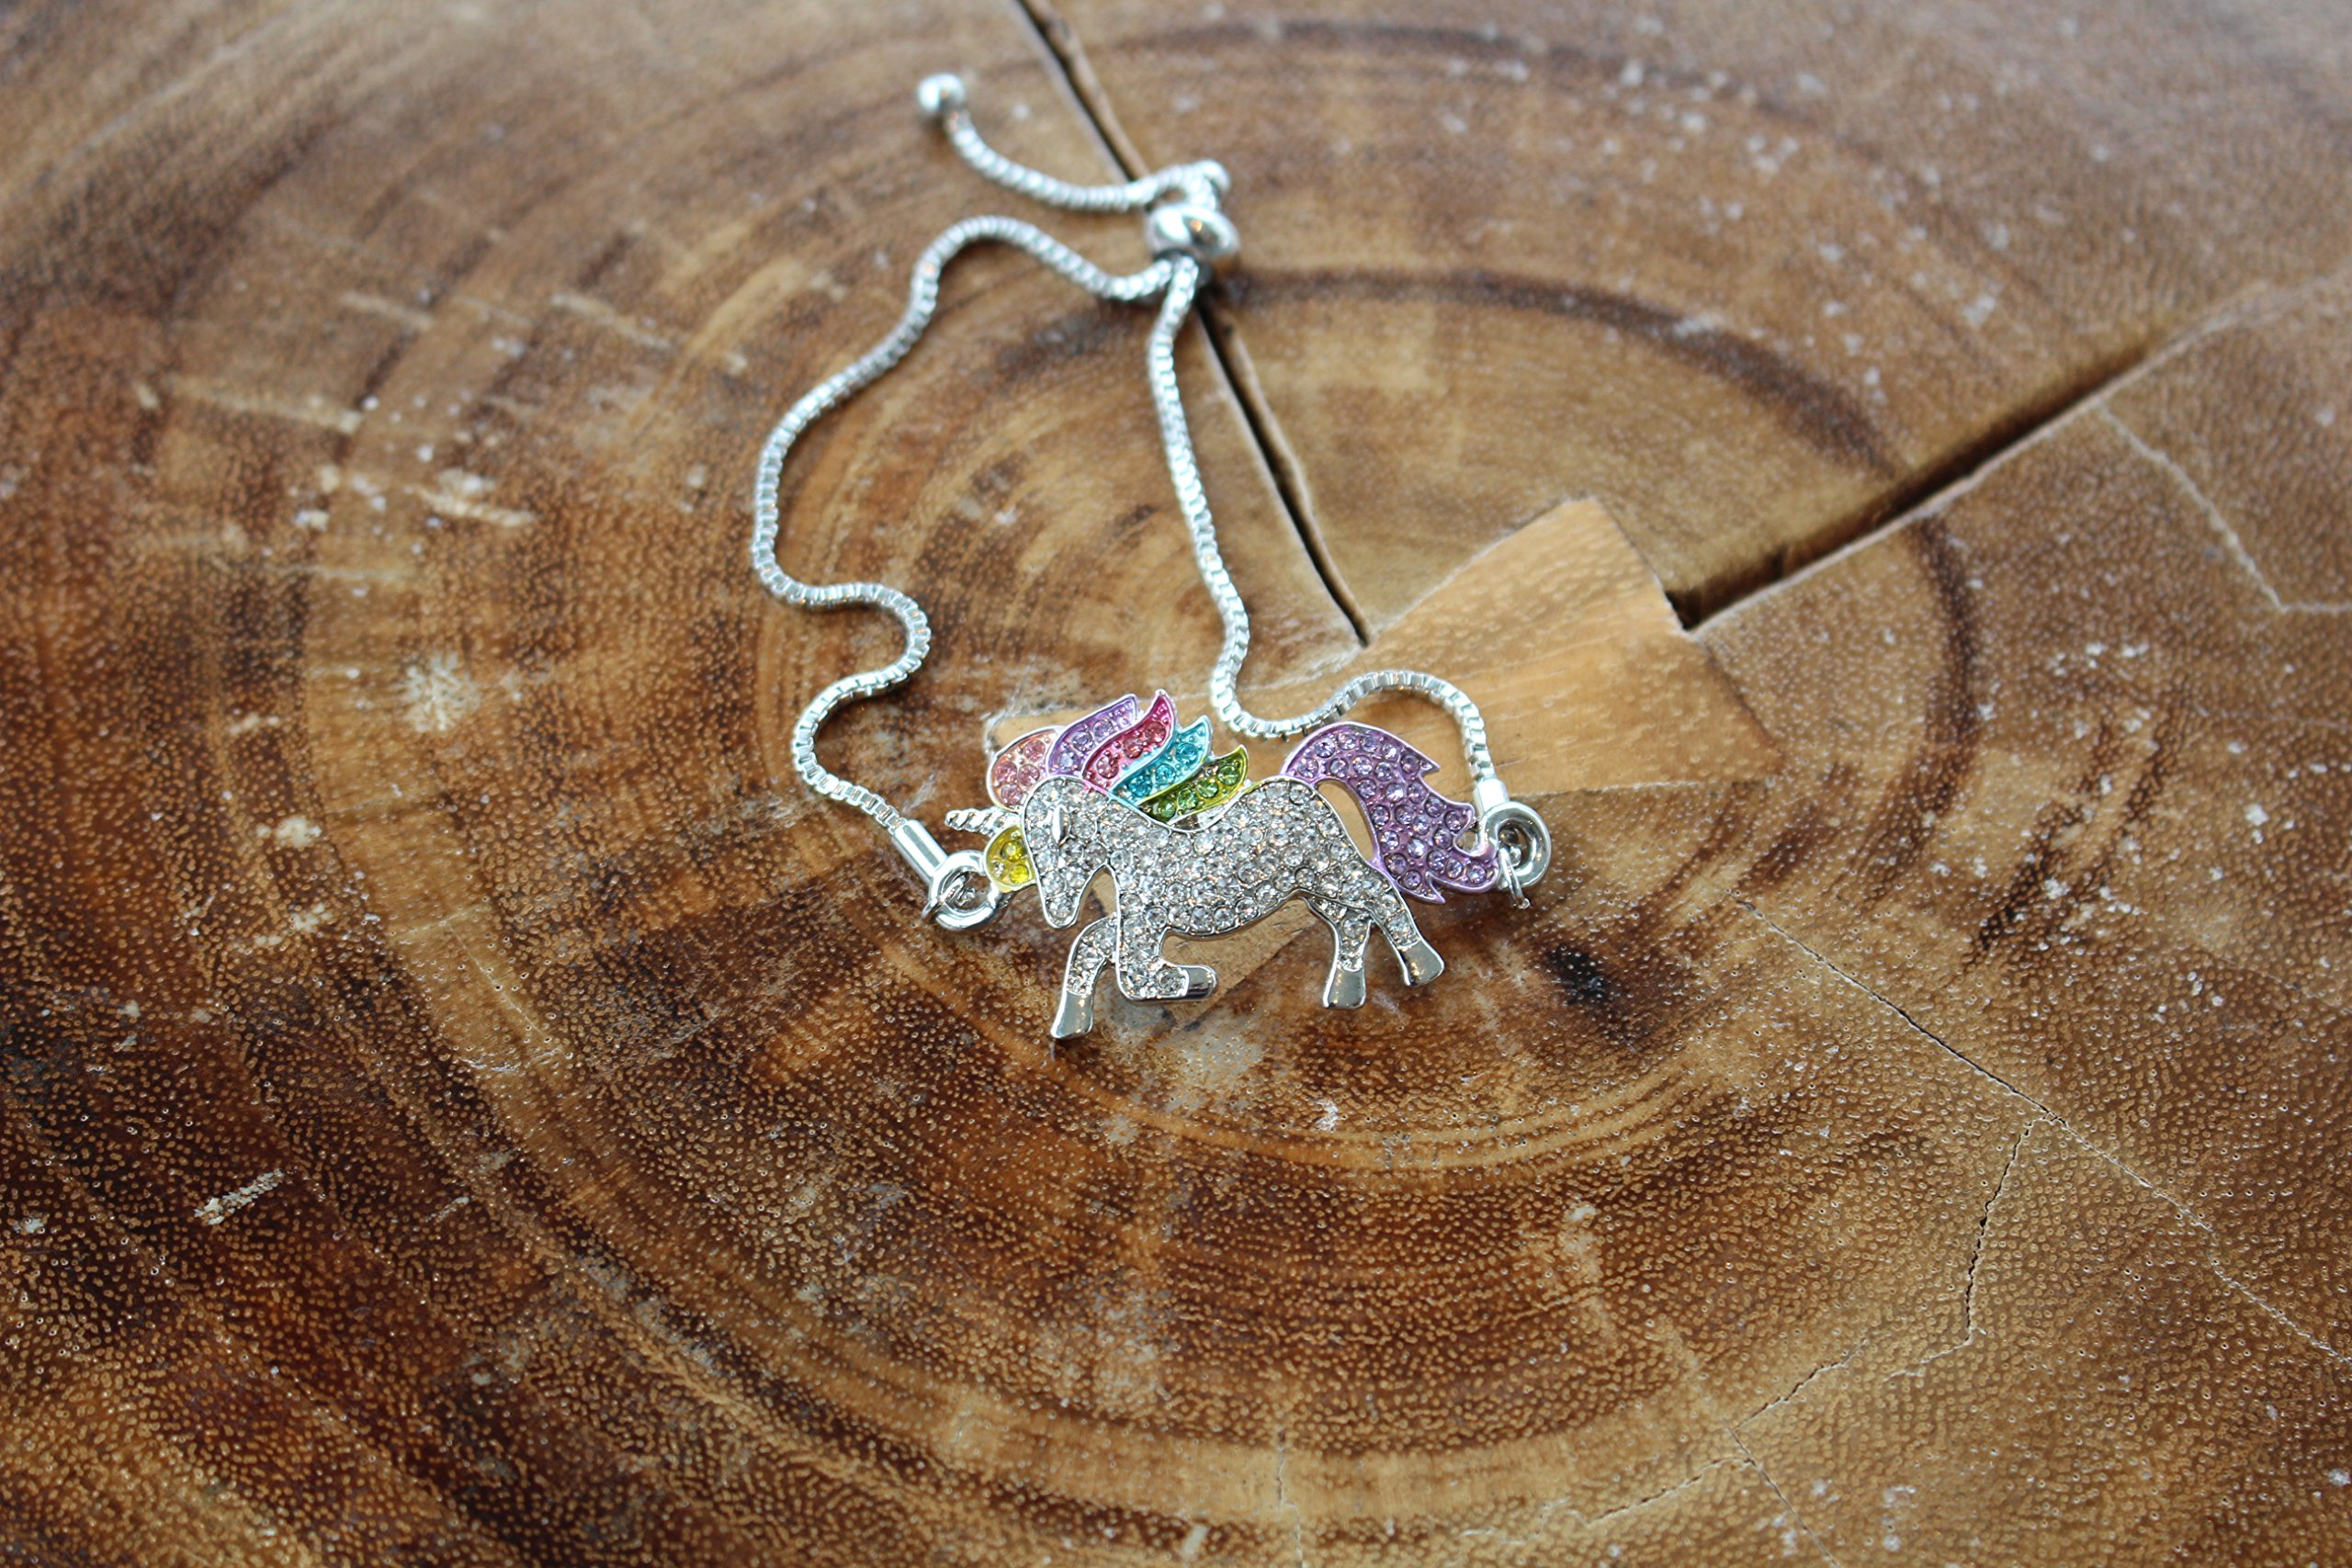 Persona Model Agency Unicorn Necklace - Rainbow Unicorn Necklace for Girls - Unicorn Rainbow Necklace - GOD of Gifts 6